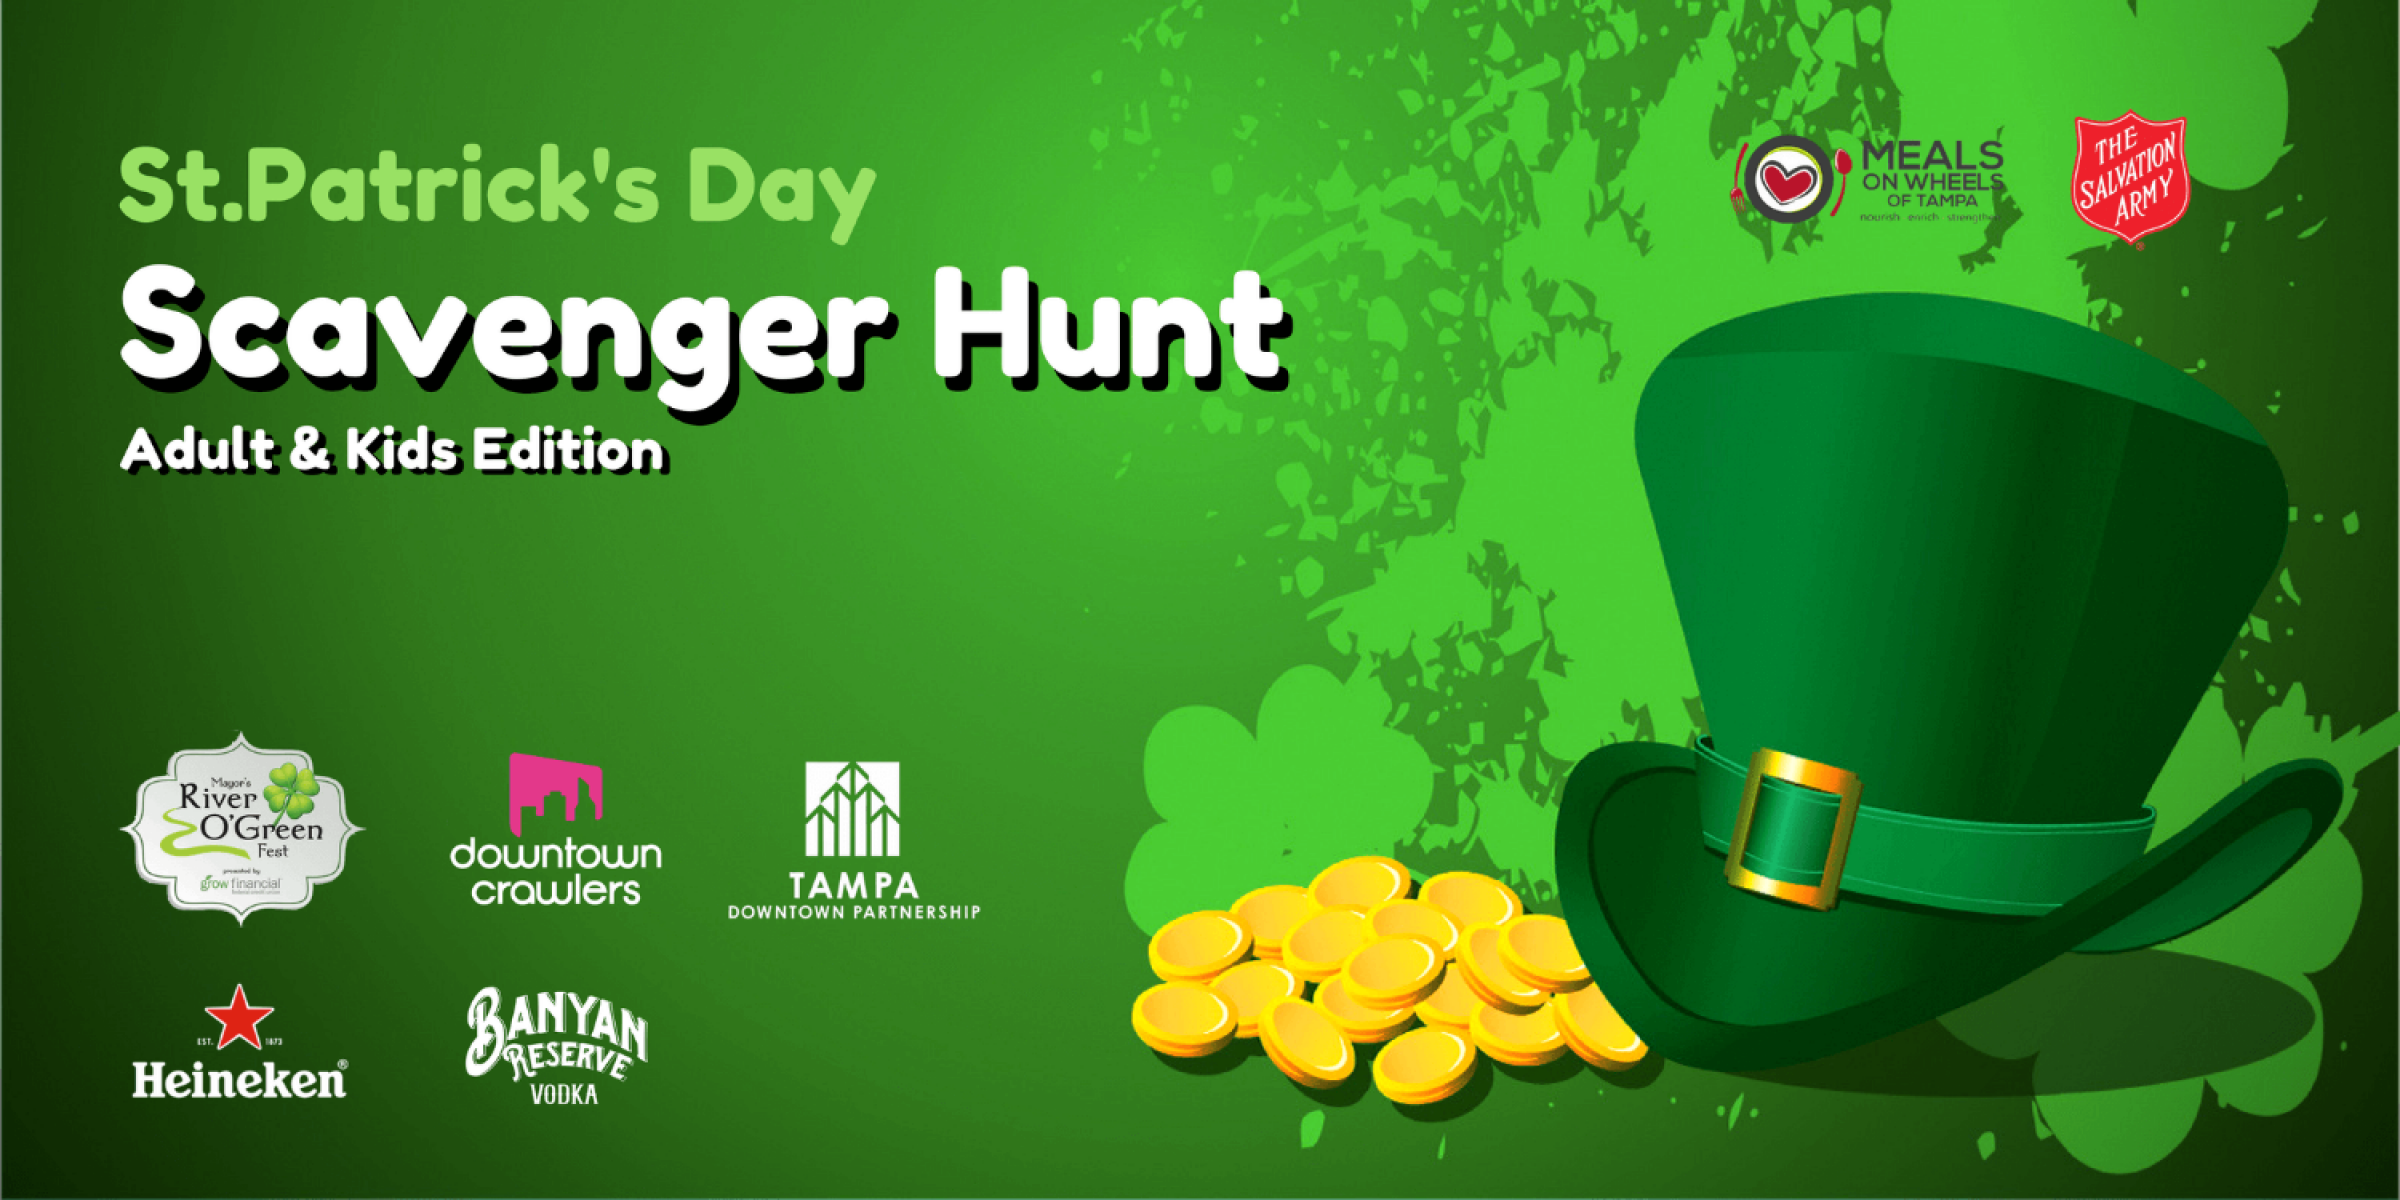 St.Patrick's Day Scavenger Hunt (Adult Edition)